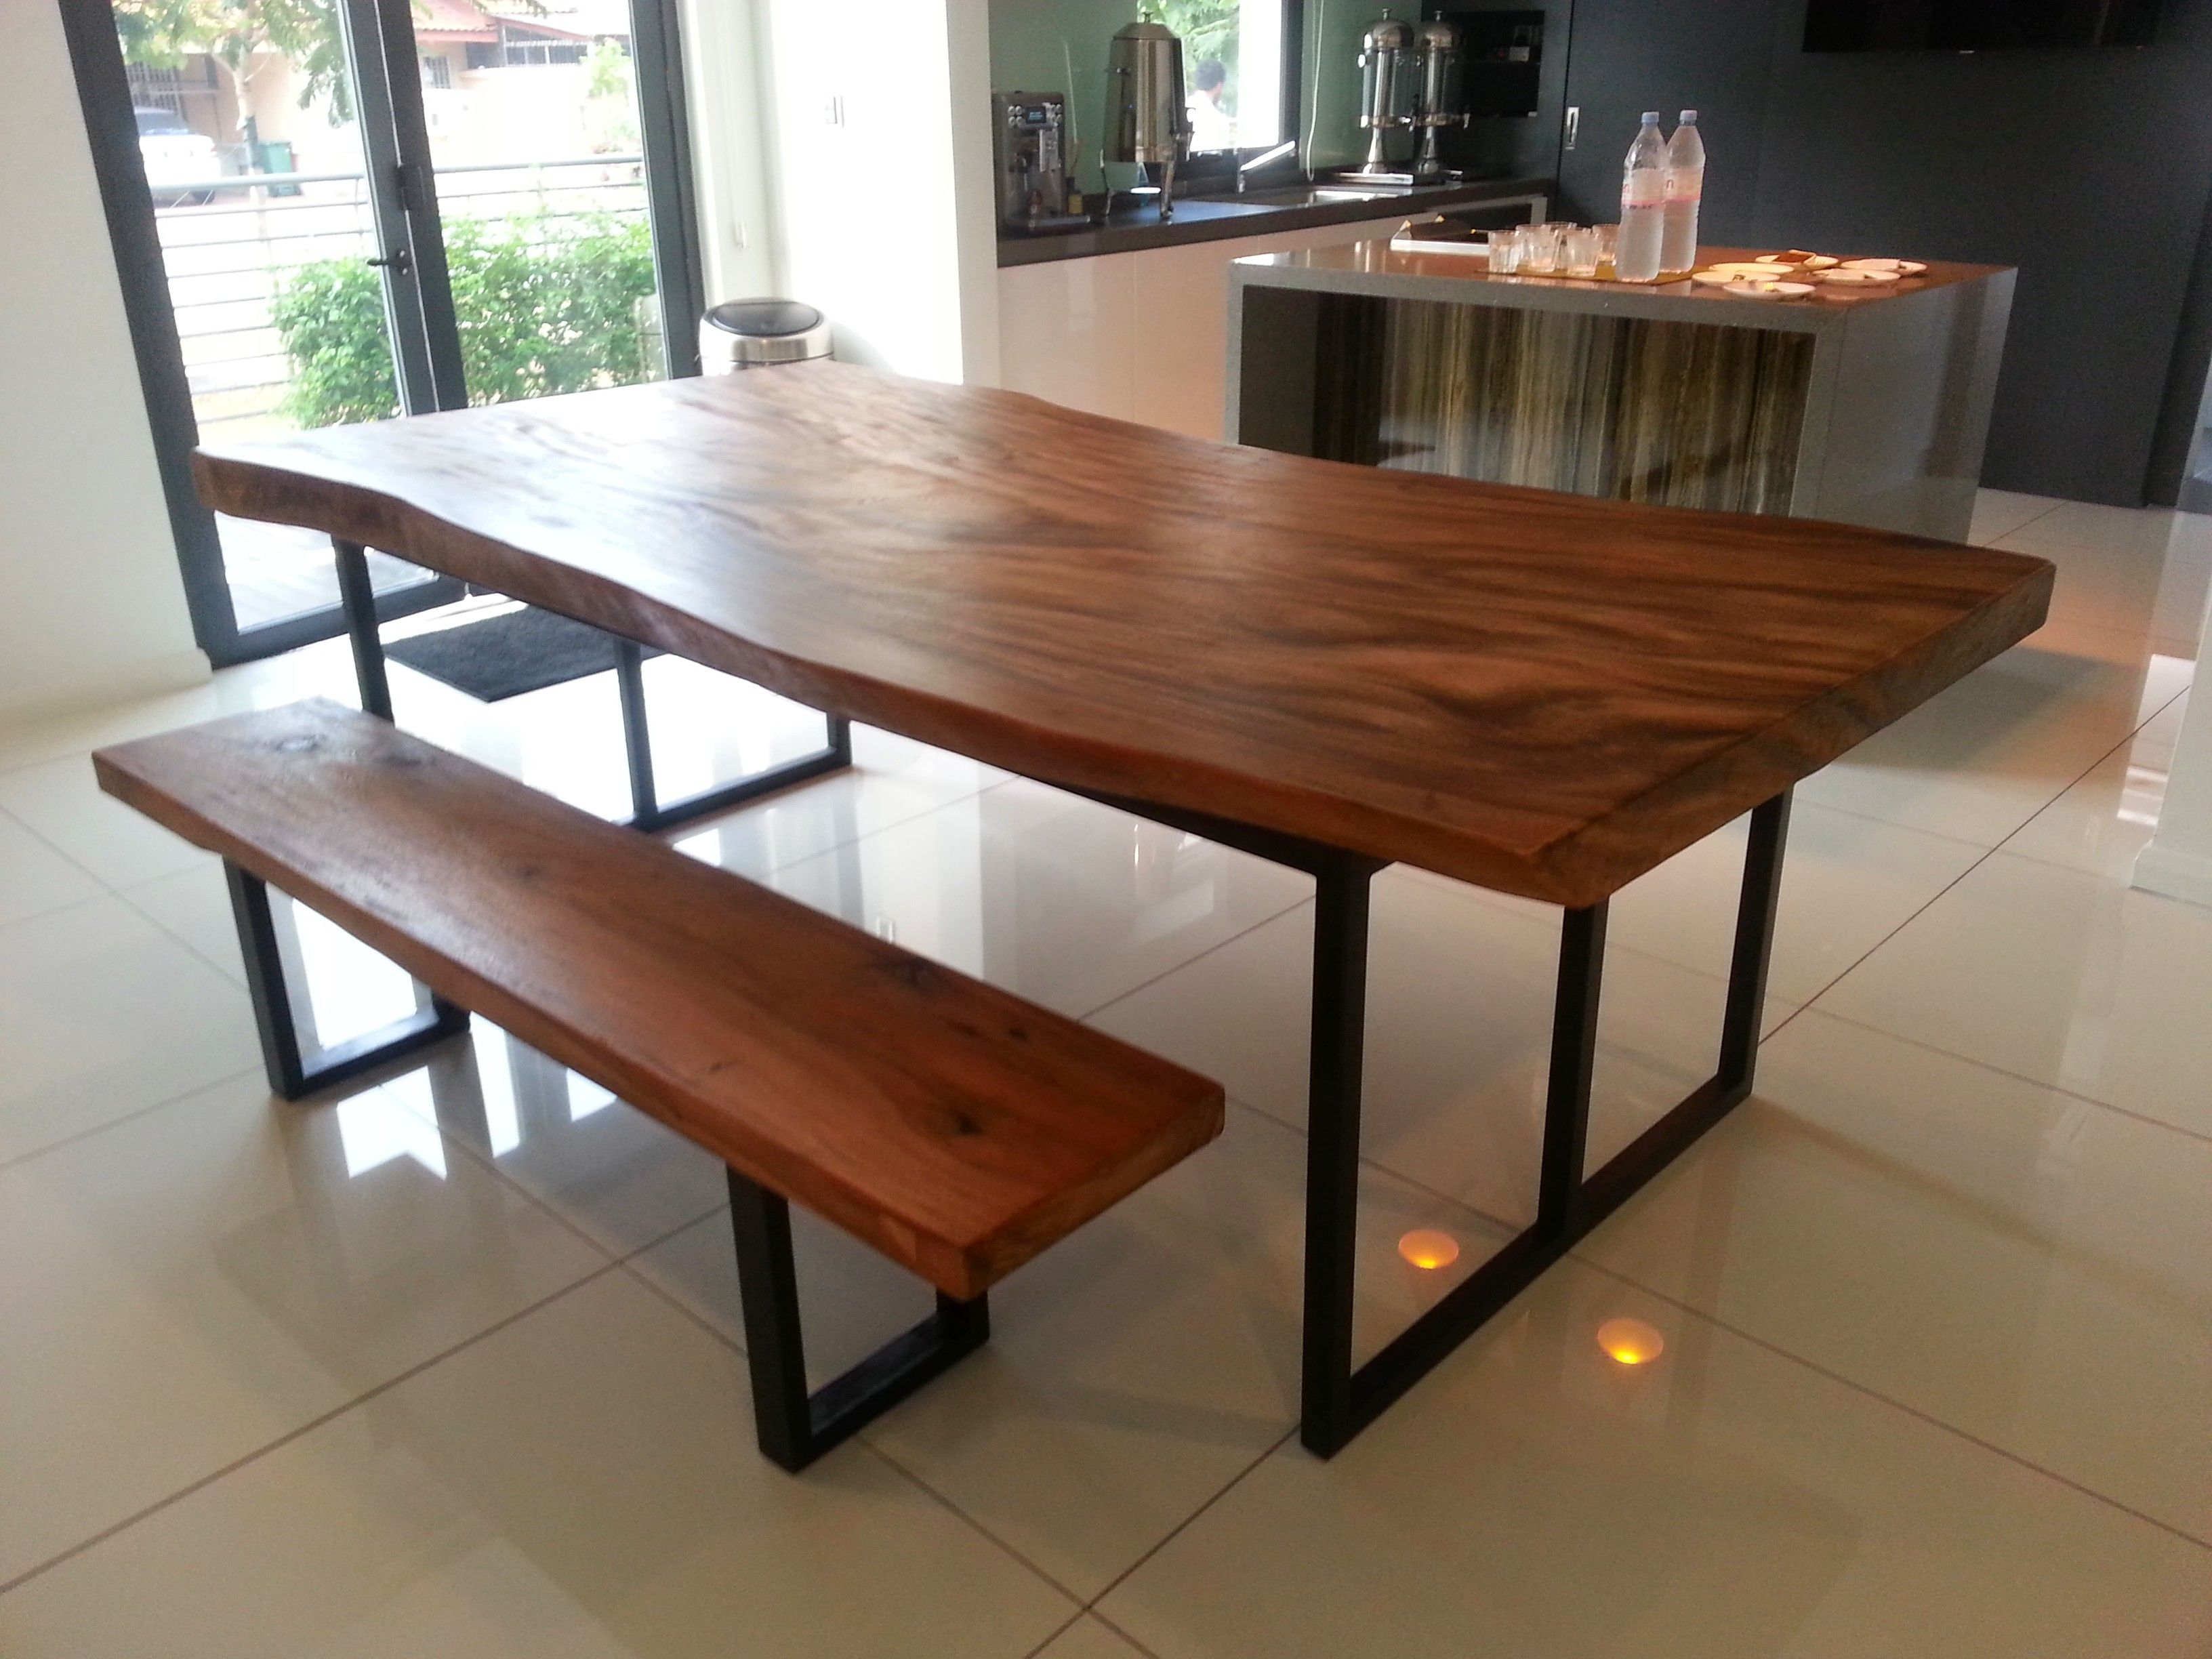 Suar Wood Dining Table With Metal Legs 220x100x78cm